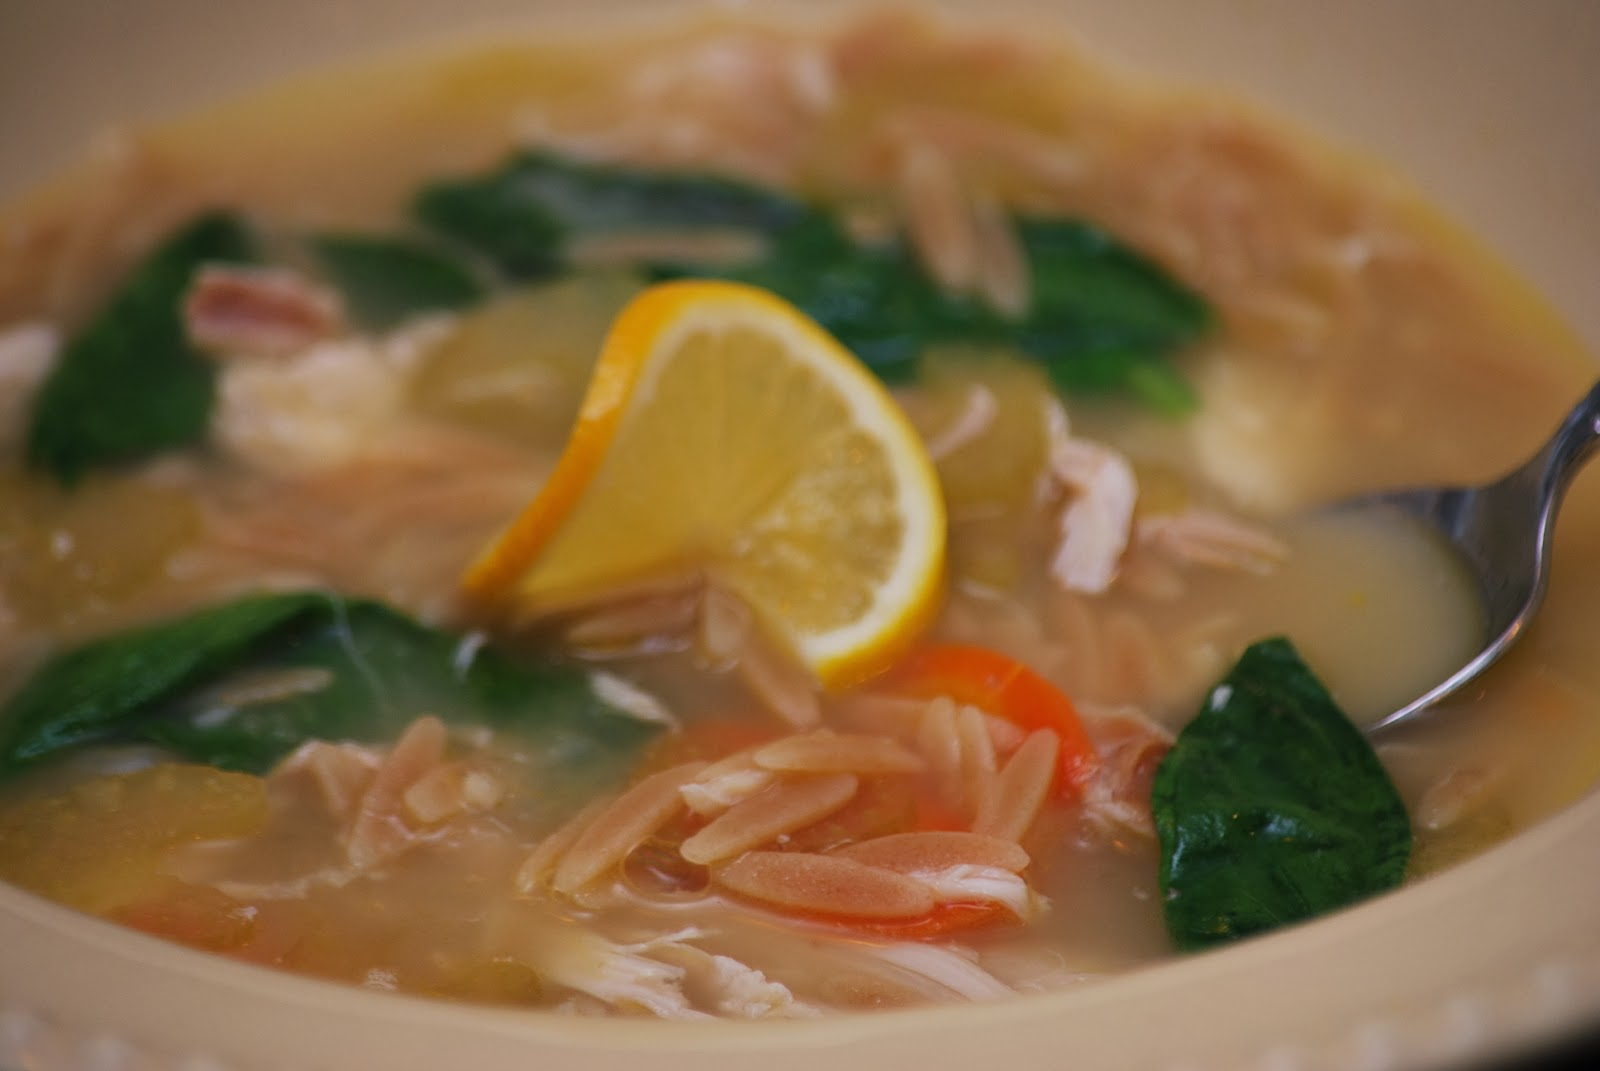 My story in recipes: Lemon Orzo Chicken Soup